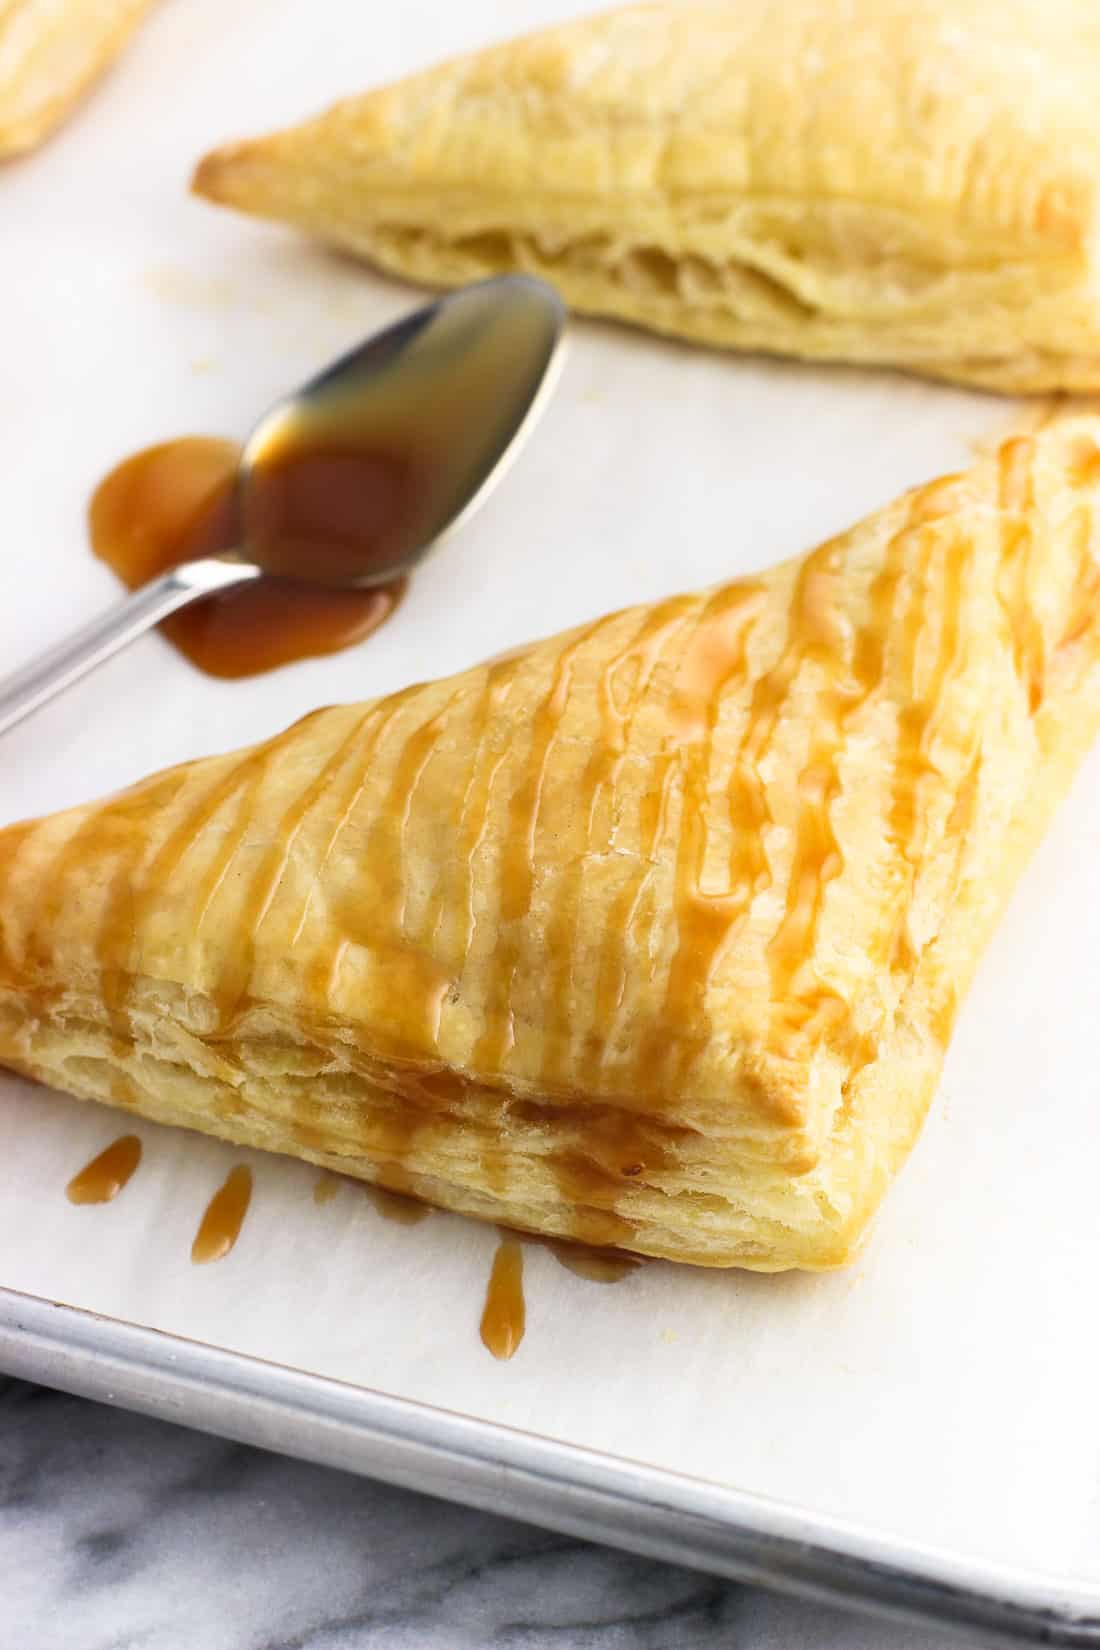 A caramel-drizzled turnover on a baking sheet.